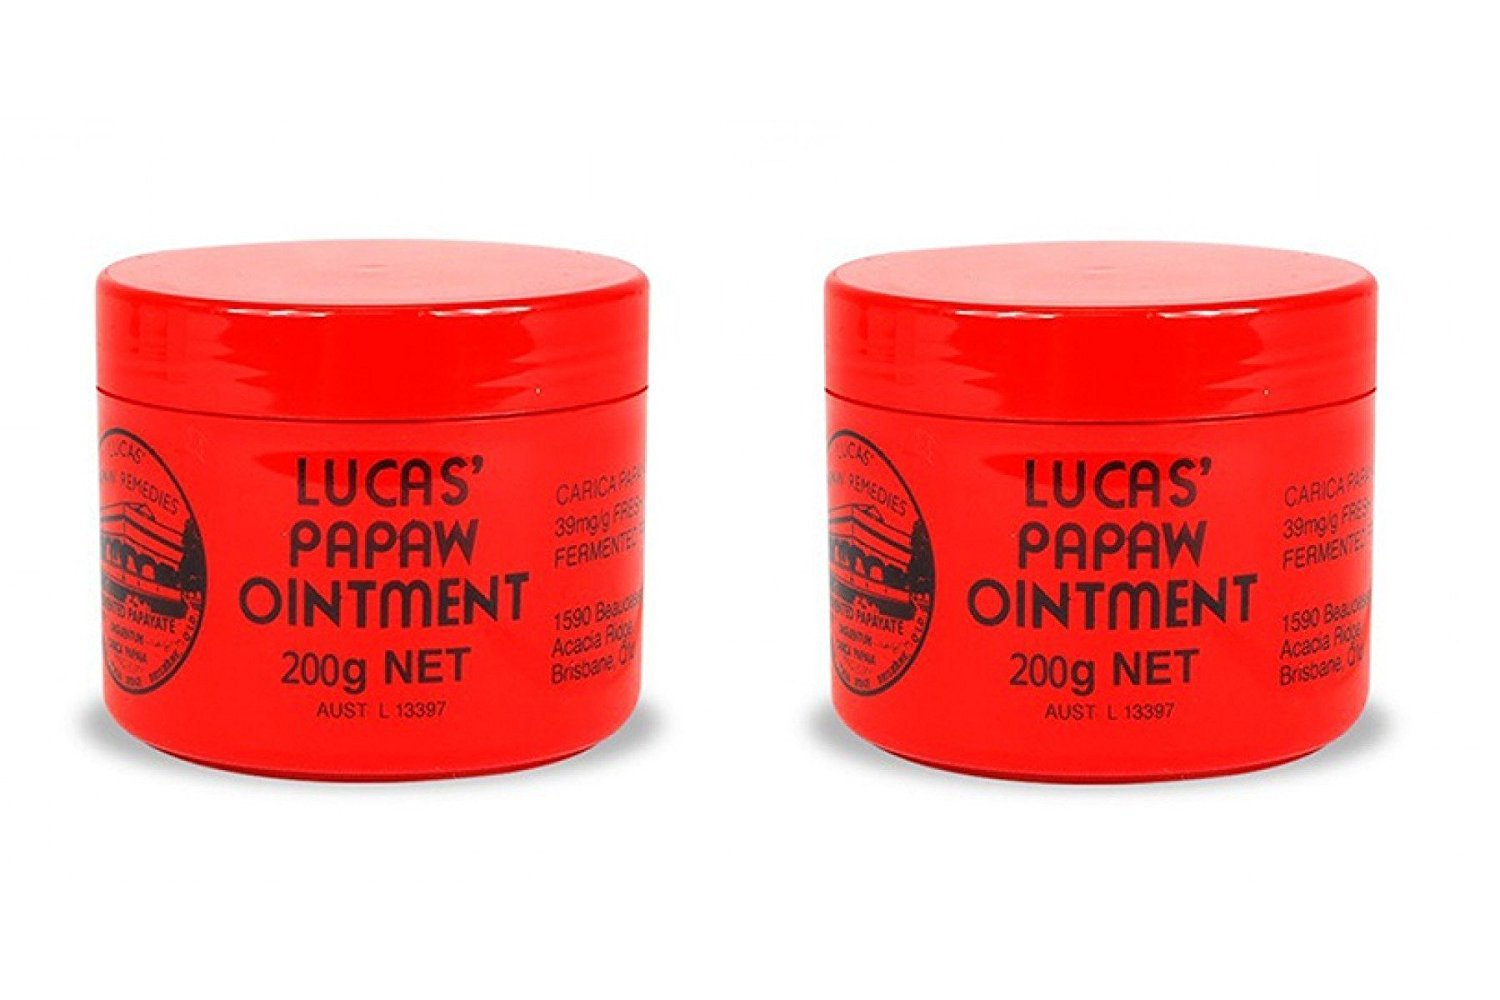 Lucas' Papaw Ointment 75g, 2 Pack x (6 Pack) (=Total 12 Pack)